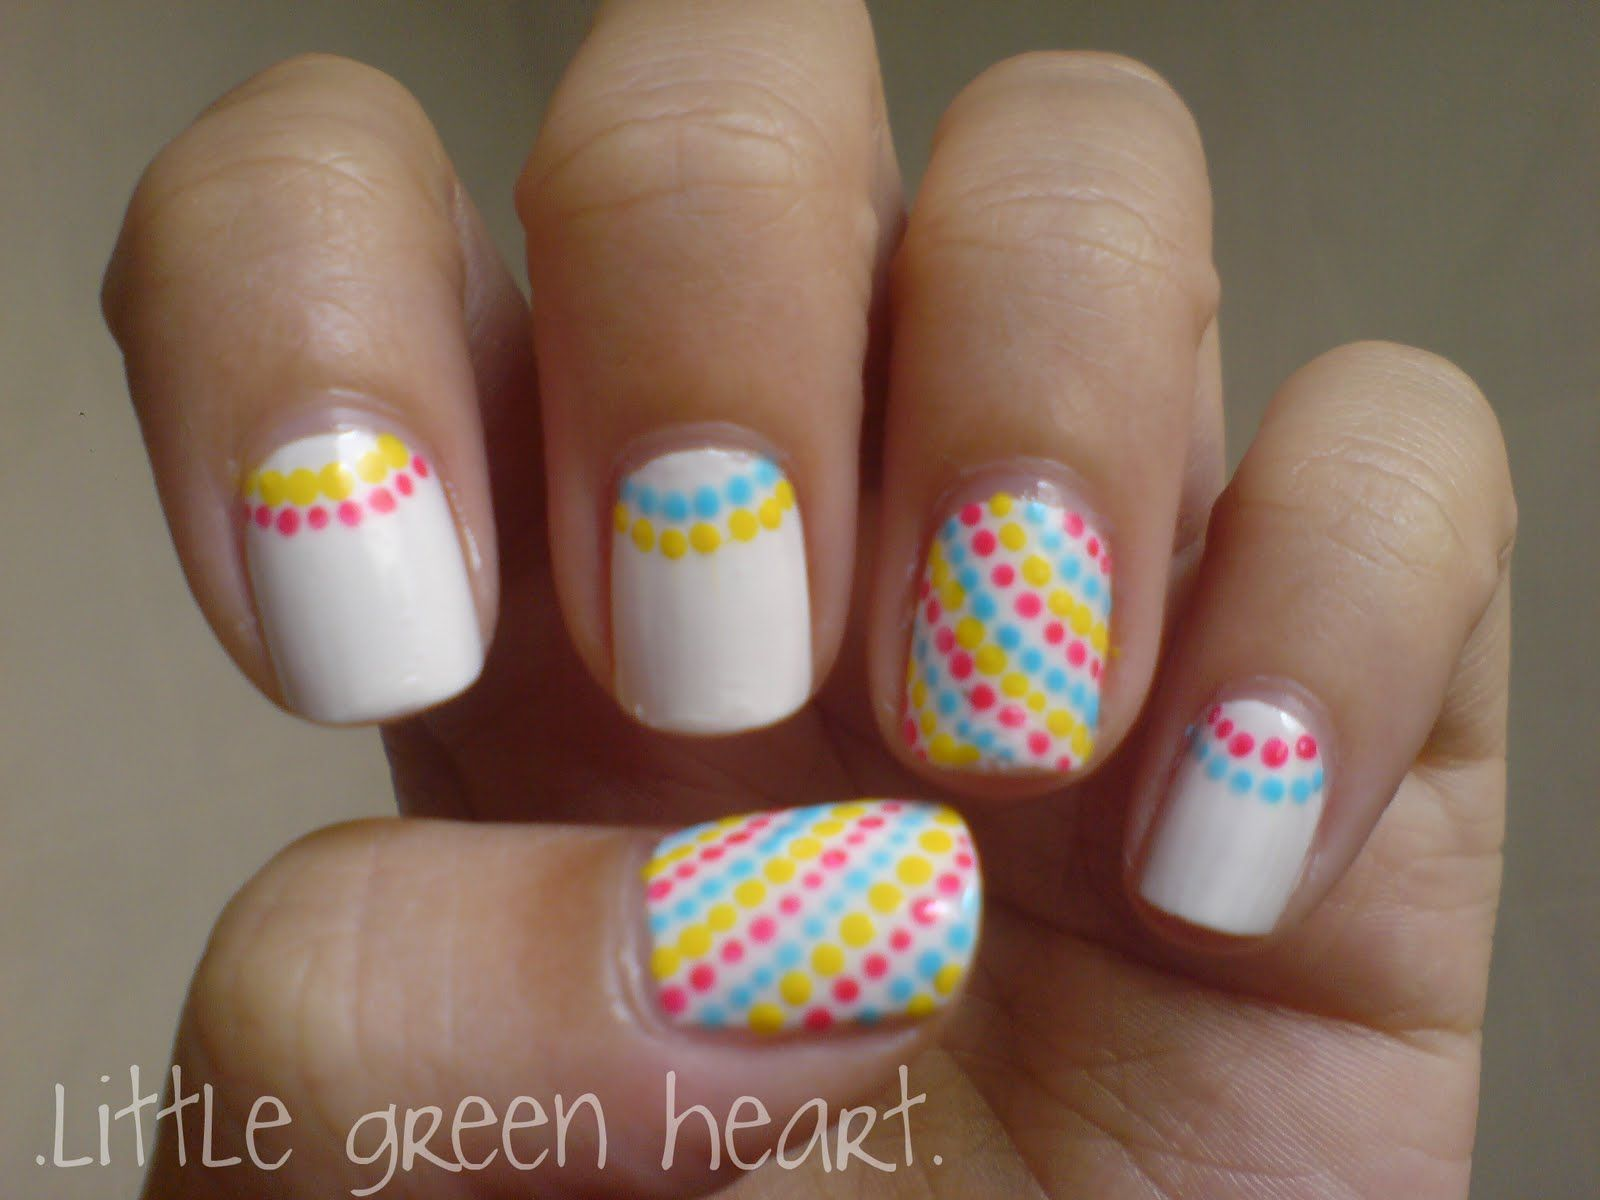 Cute Nail Ideas For You Nail Design Arts - Cute Nail Ideas – Nail ...